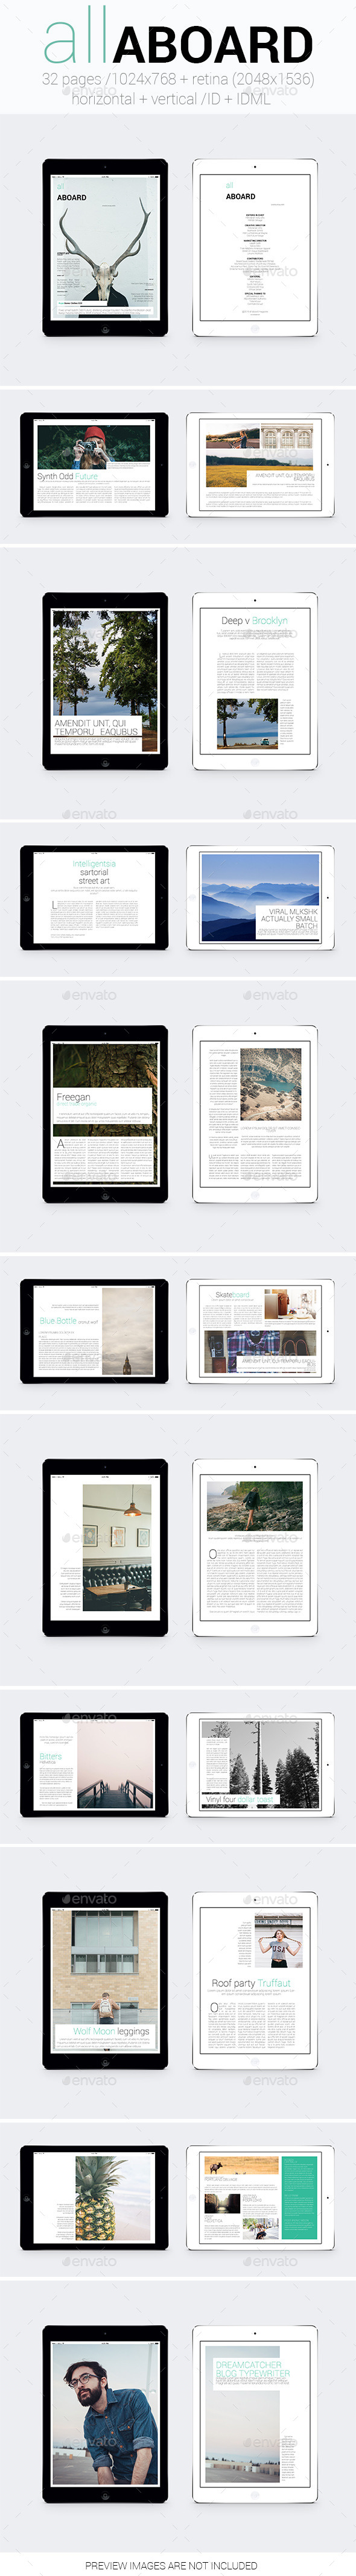 Tablet&iPad All Aboard Magazine - Digital Magazines ePublishing